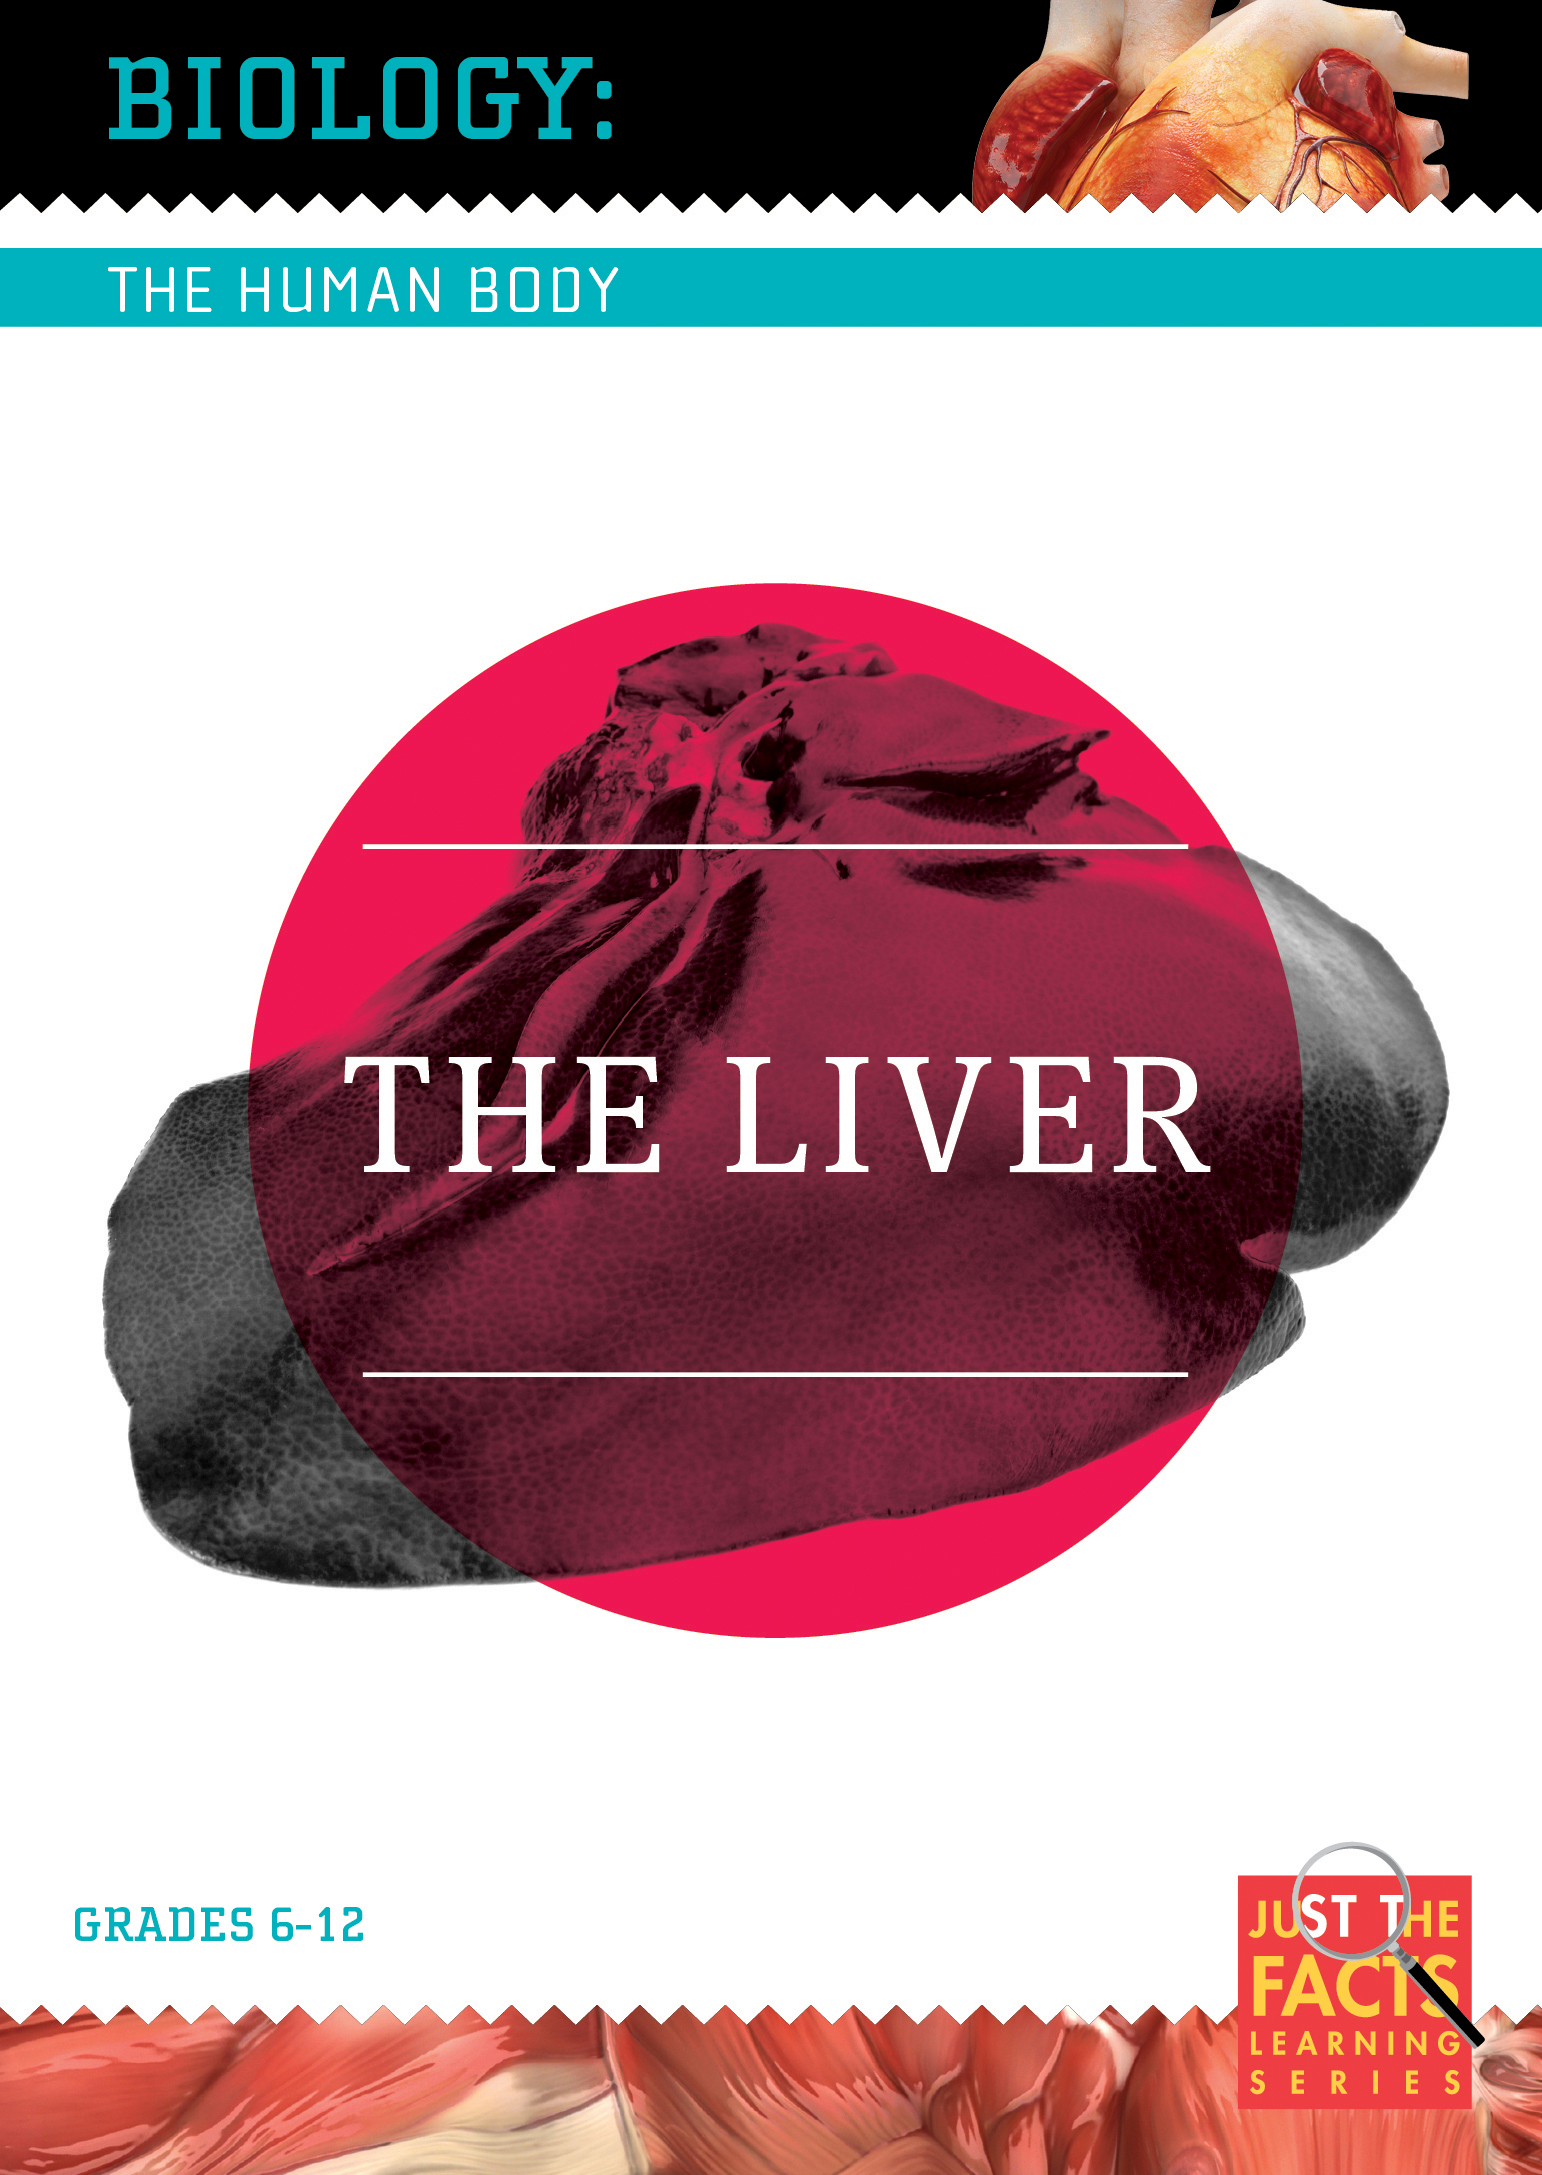 Biology of the Human Body: The Liver